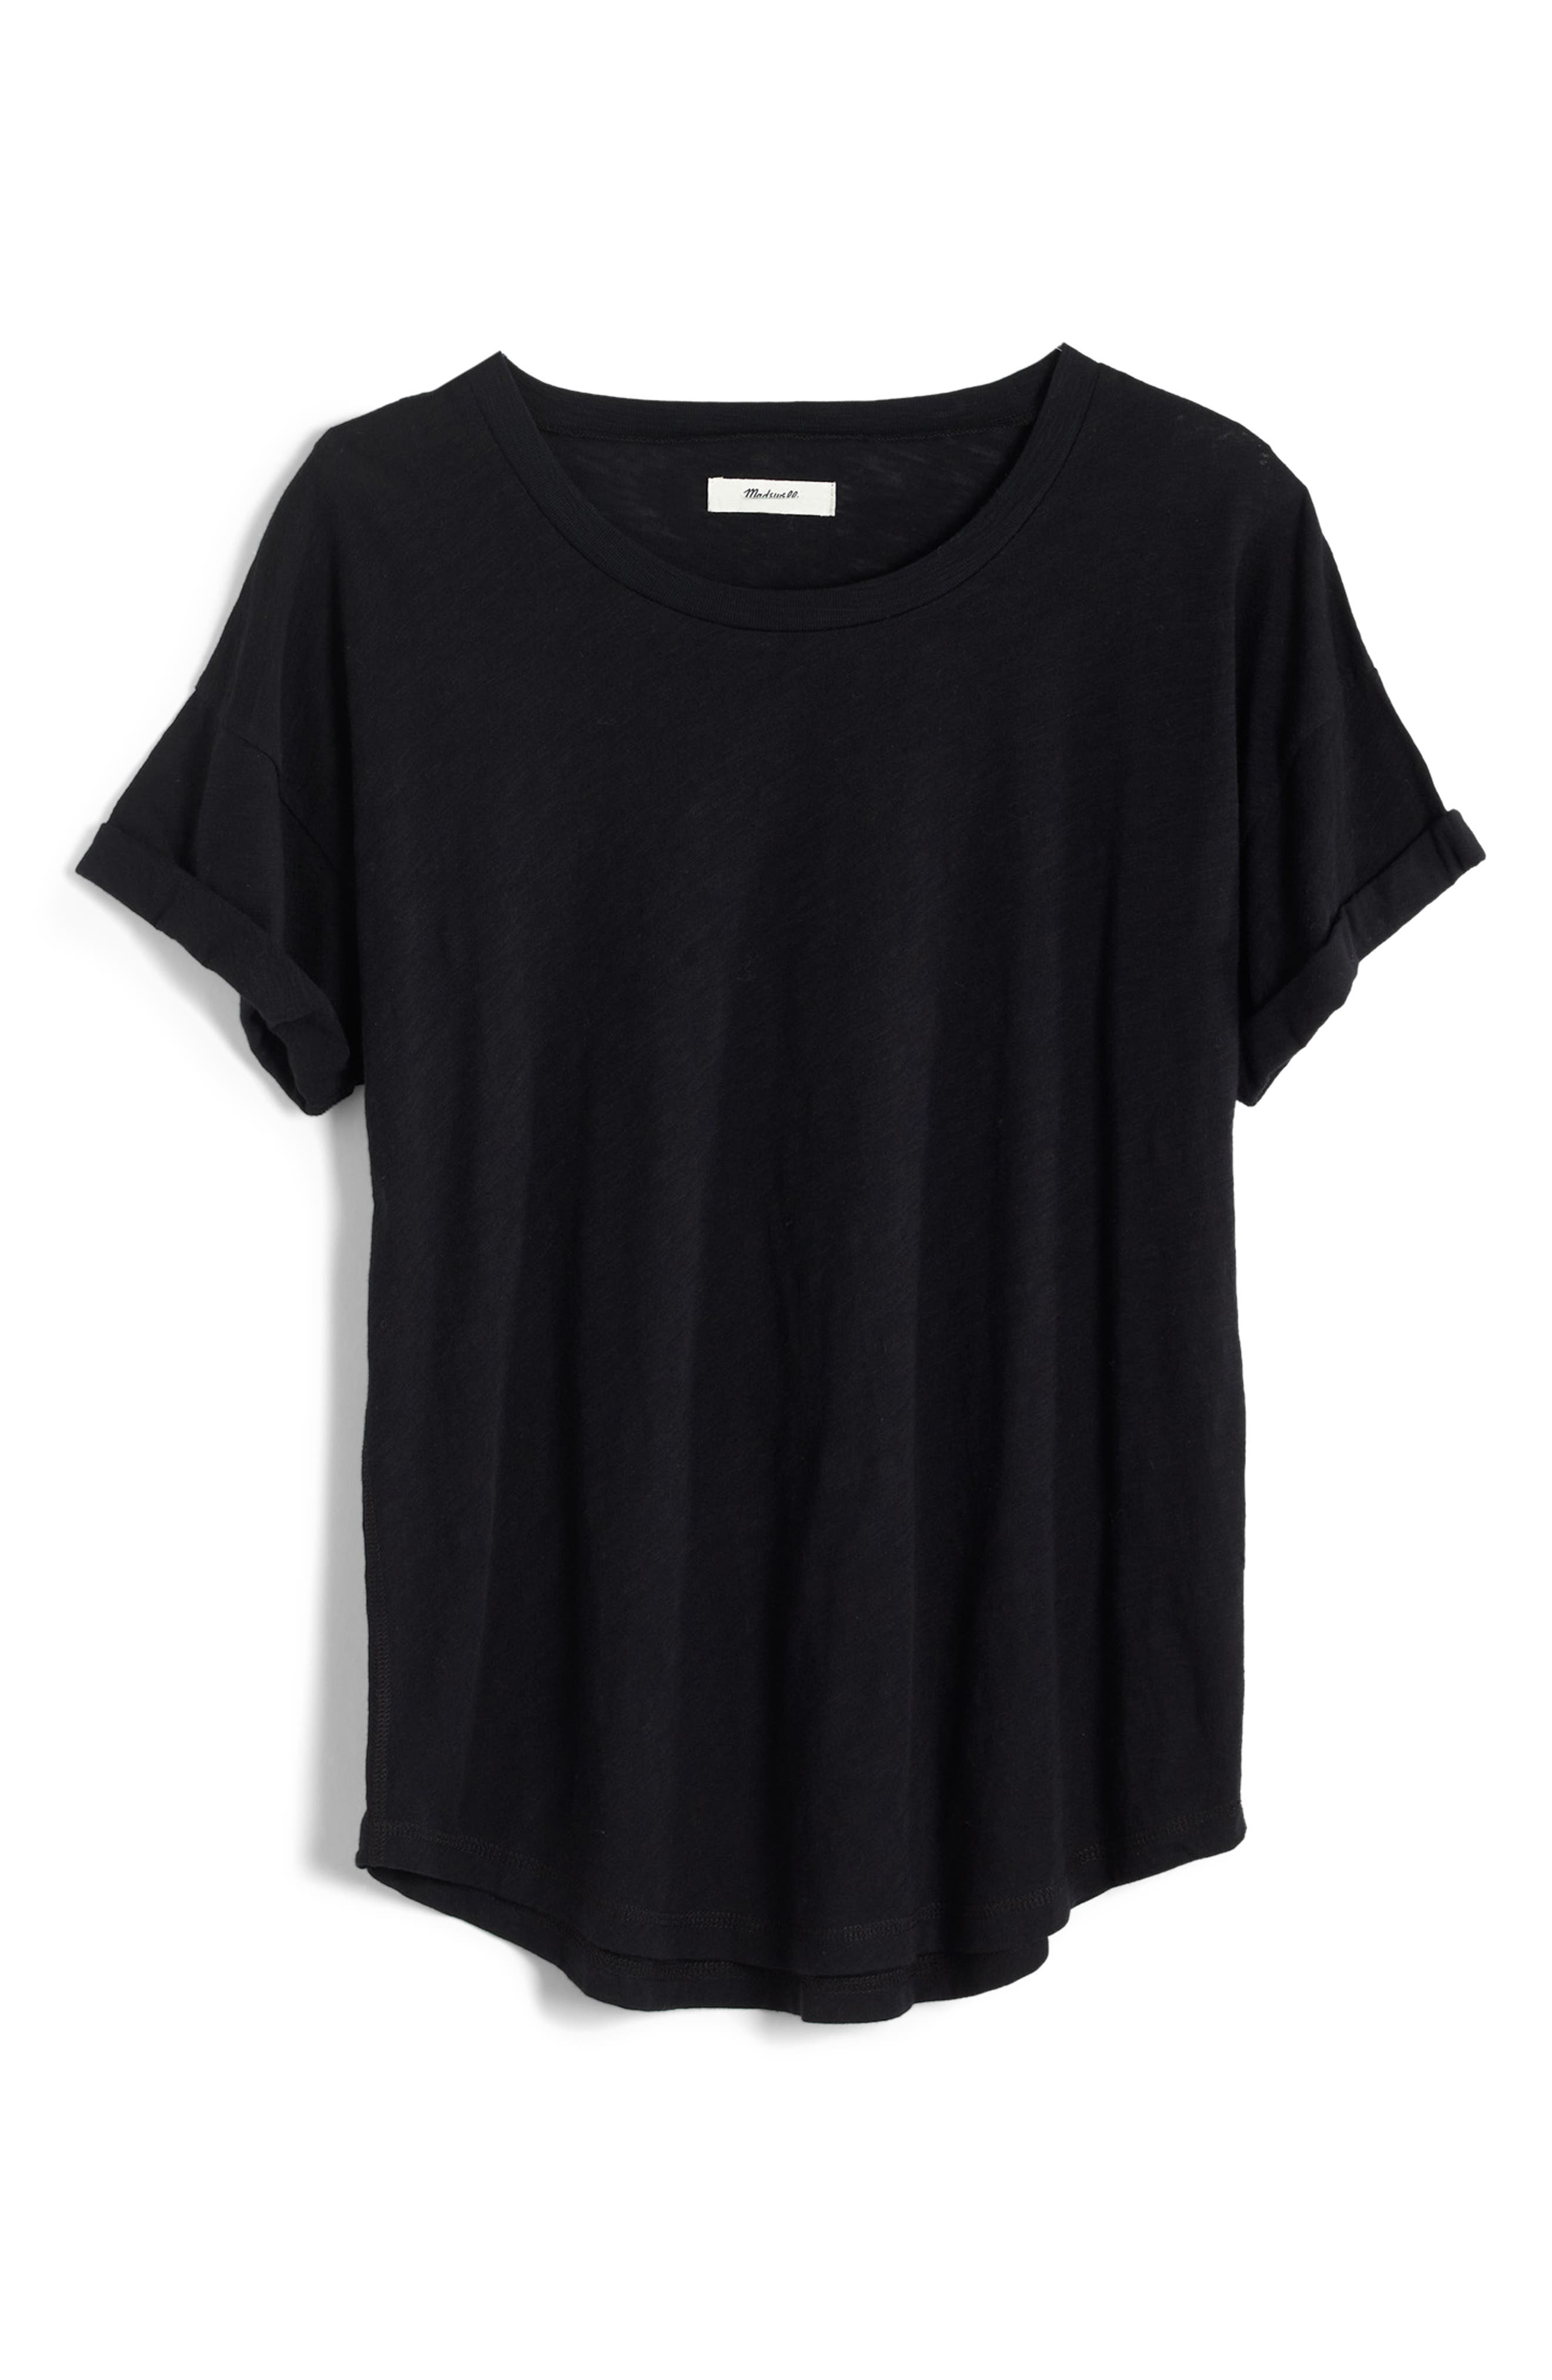 MADEWELL, 'Whisper' Cotton Crewneck Tee, Alternate thumbnail 3, color, TRUE BLACK